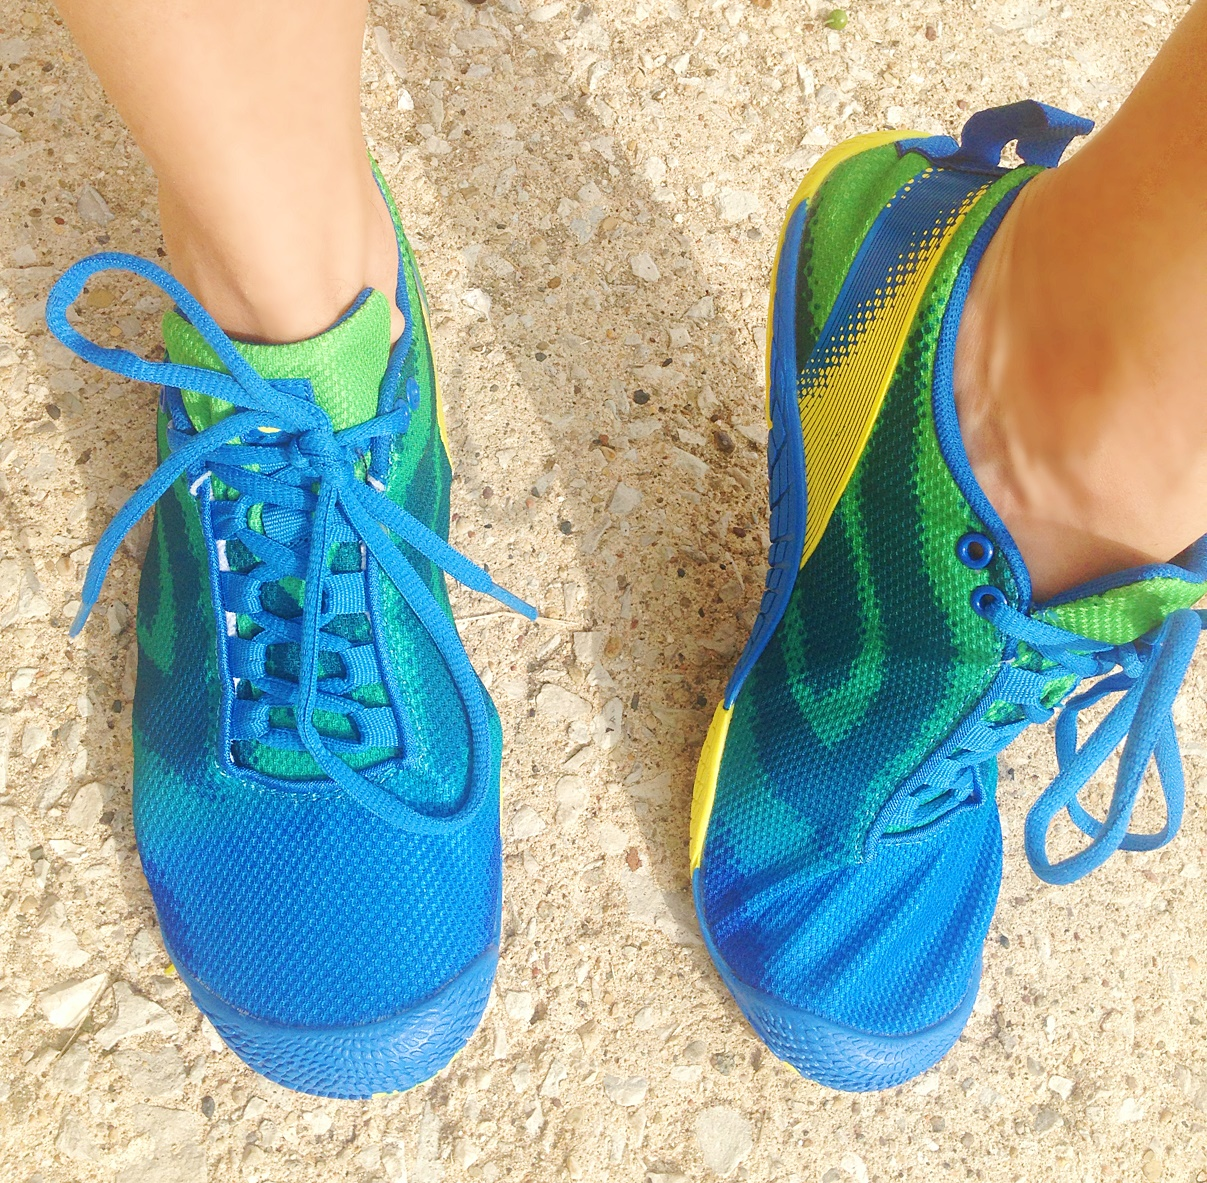 Tesla Barefoot Shoes Review for